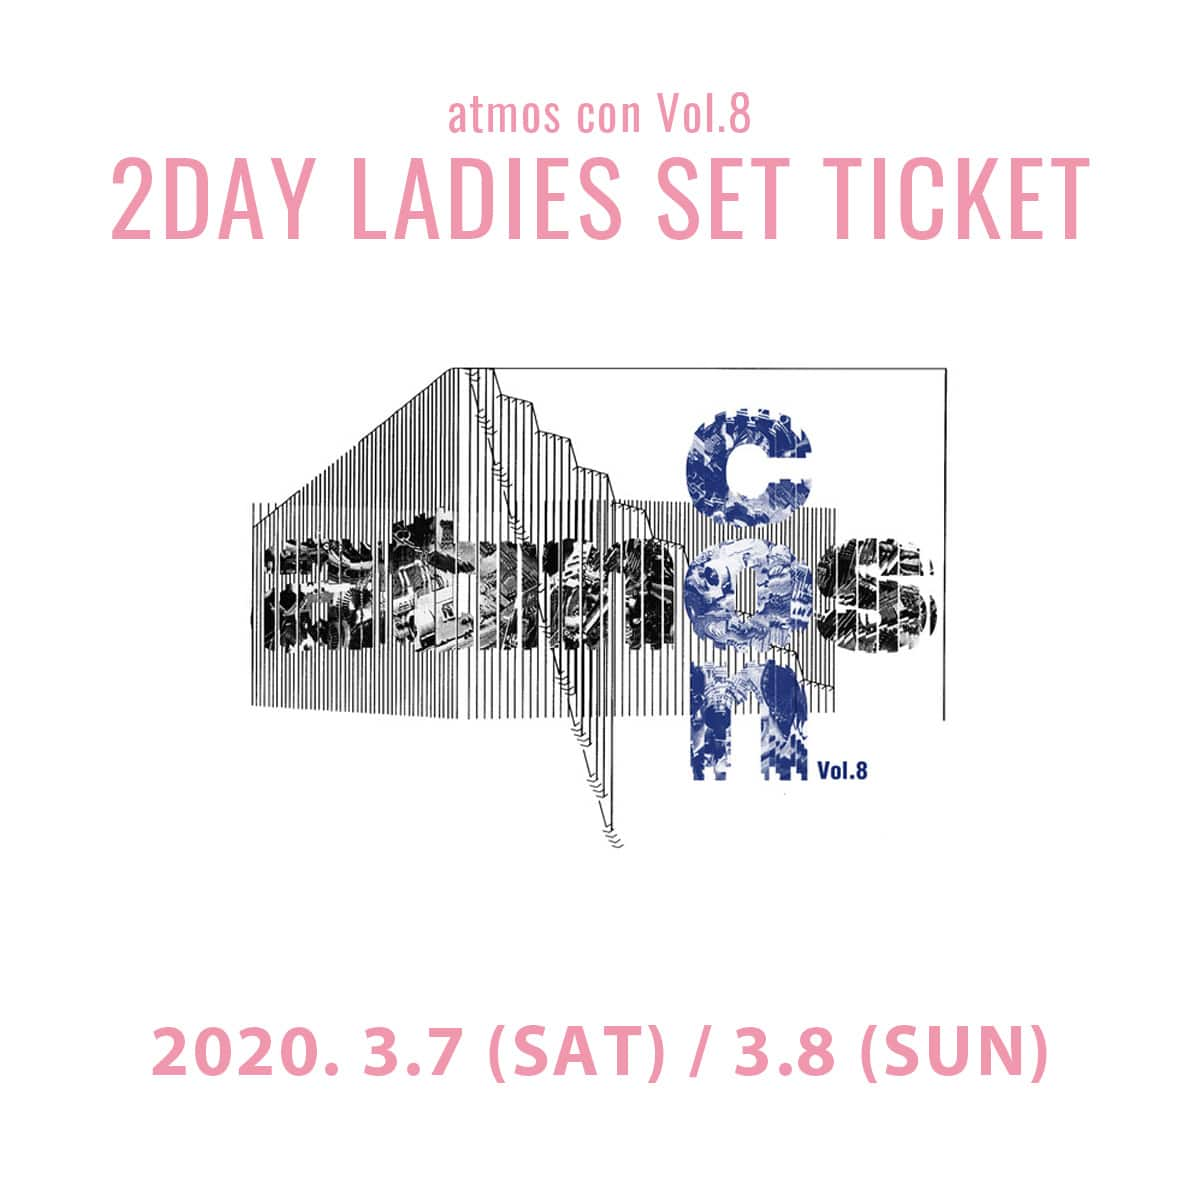 atmos con Vol.8 女性入場無料チケット(3月7、8日) 2DAY SET 20SP-S_photo_large